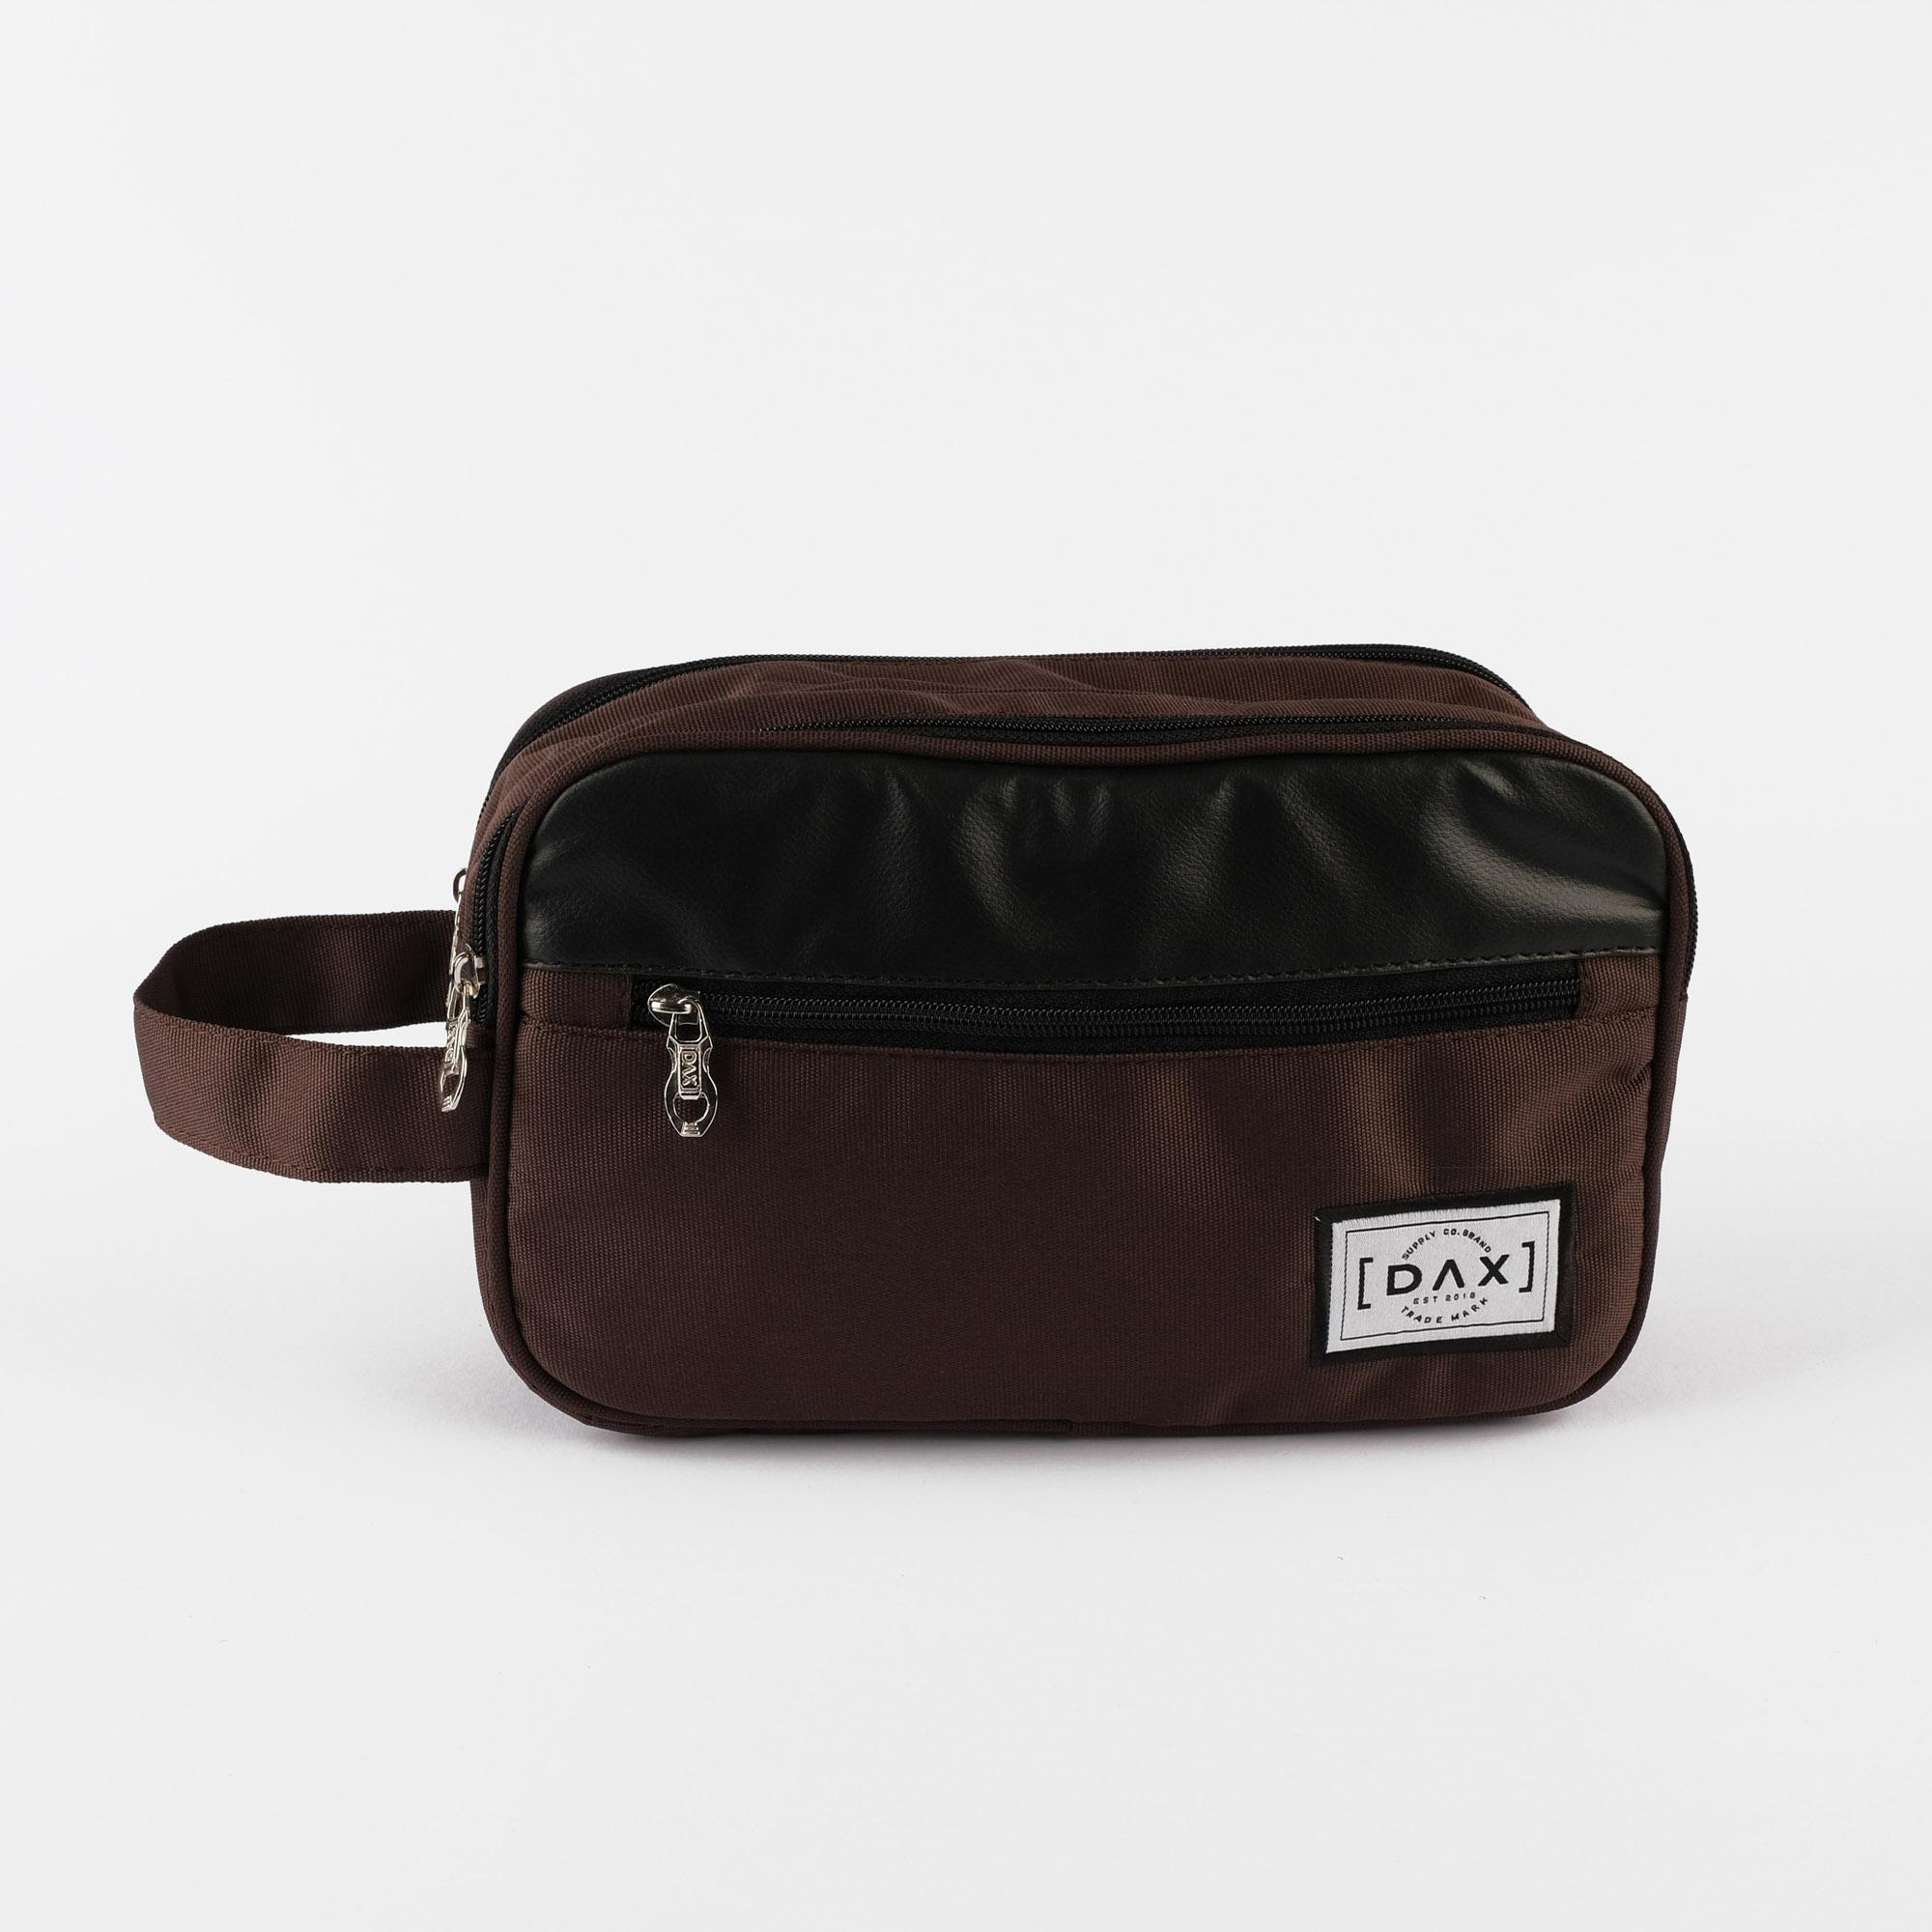 Justin Pouchbag By Daxindonesia.